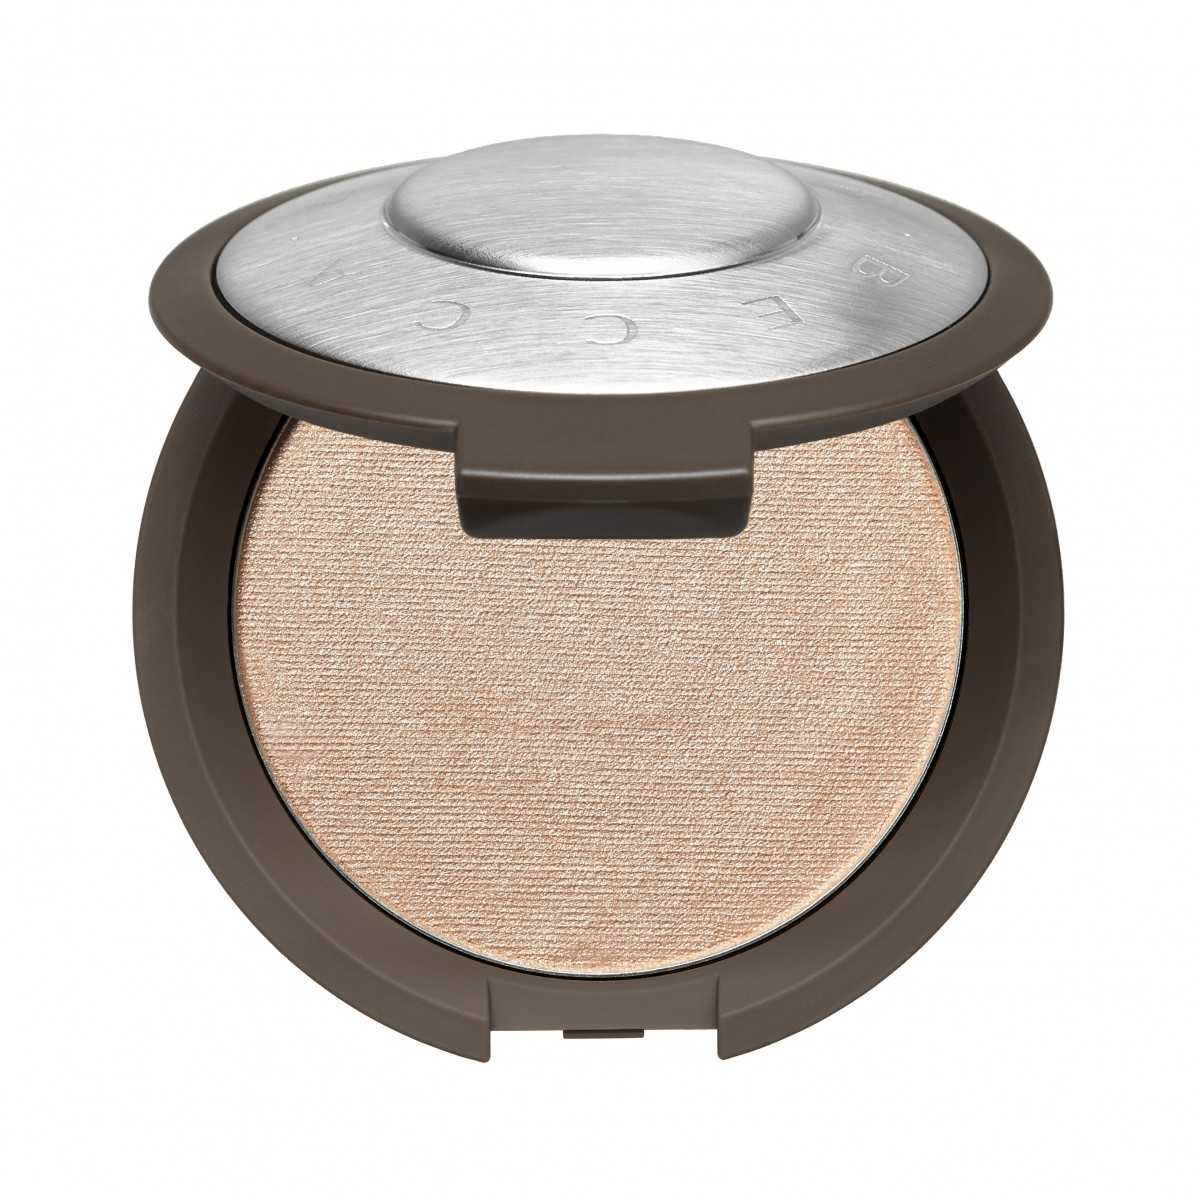 shimmering skin perfector pressed c-pop/ Becca/ currently wearing